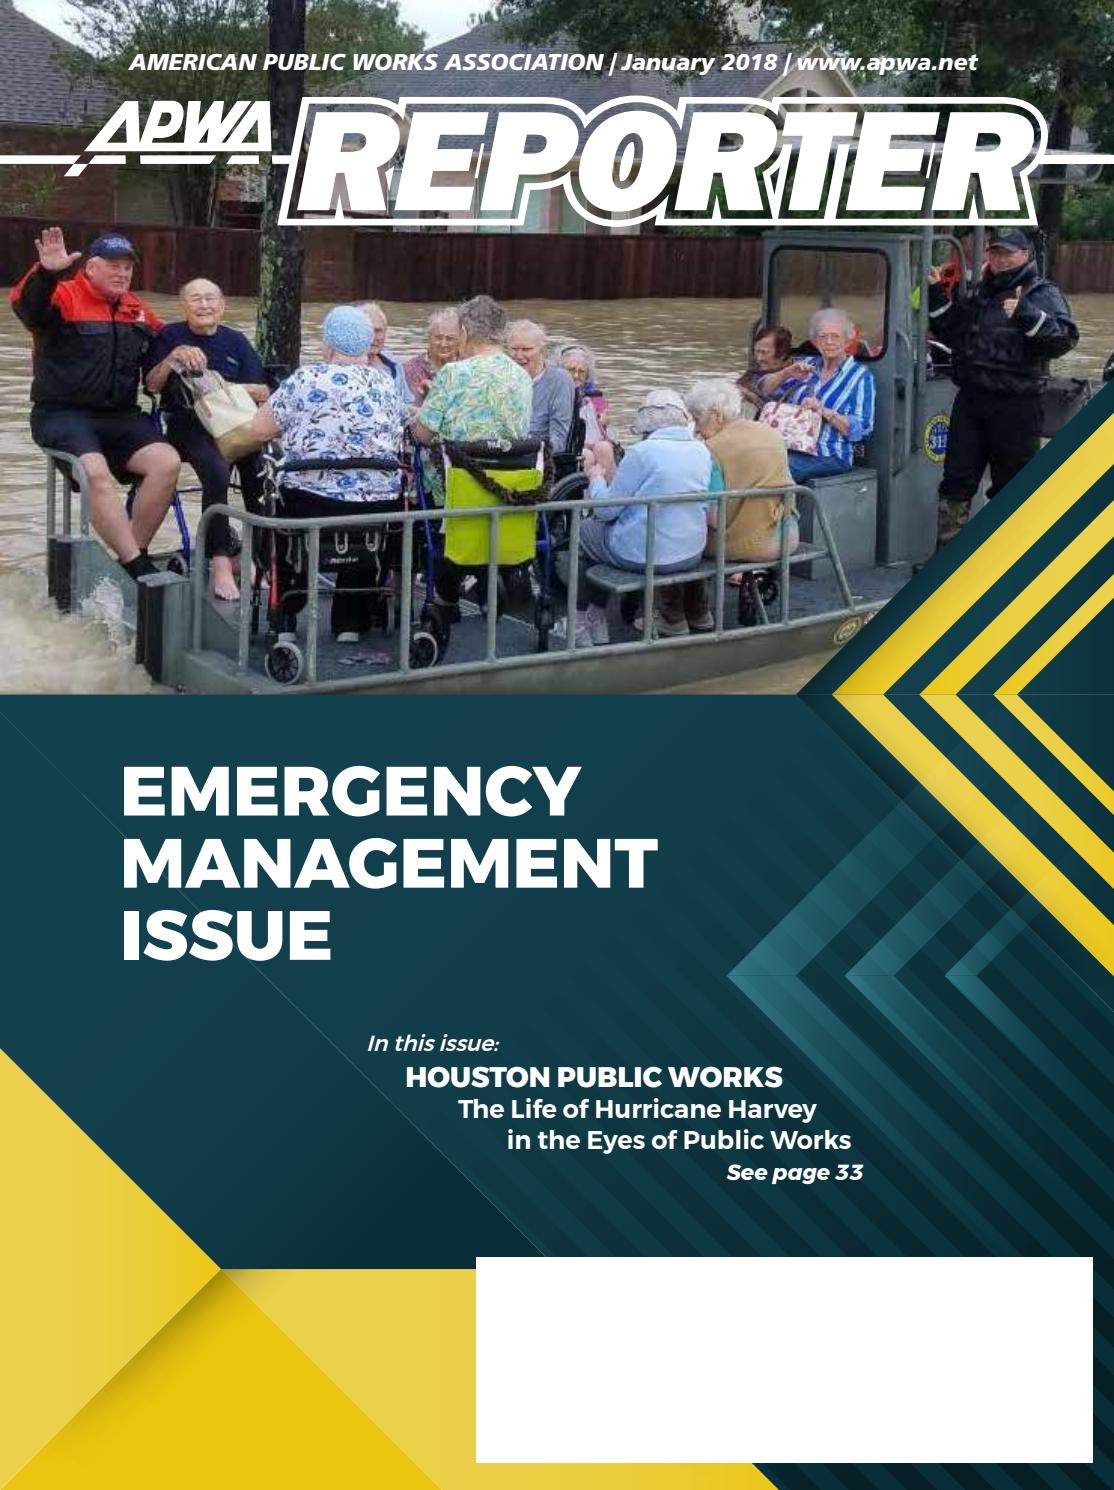 APWA Reporter, January 2018 issue by American Public Works